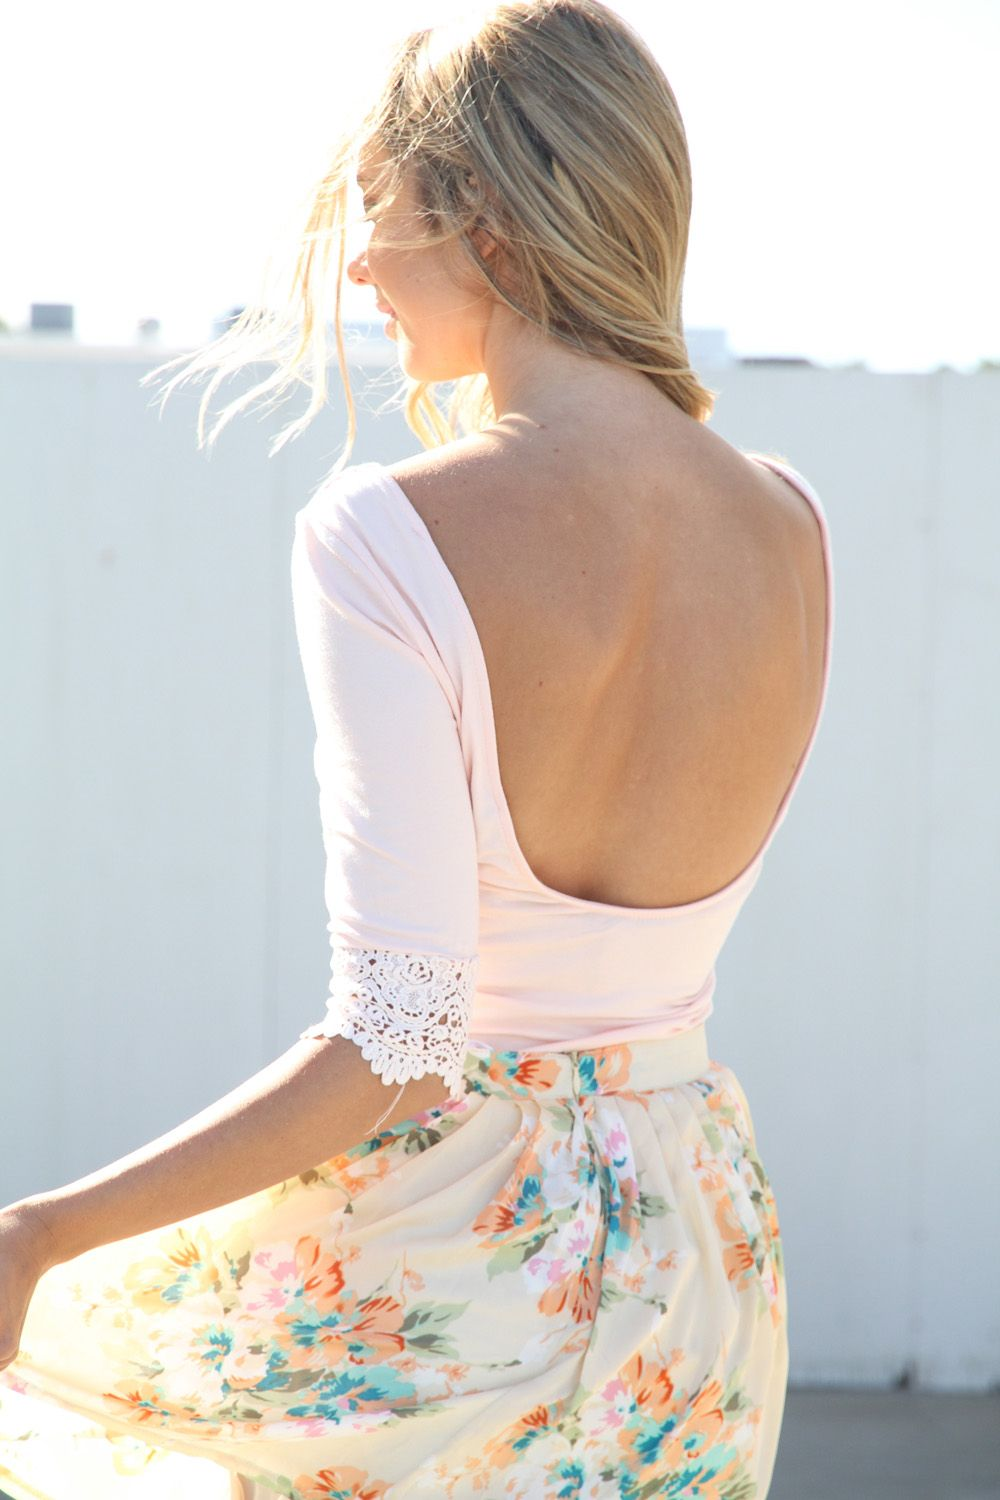 Sabo Skirt Jasmine Top. Adorable blush pink top featuring a low back and lace trim detailing on the sleeves. Crop sleeves, stretch fabric. Looks super cute tucked into high waisted cut offs and ankle boots.